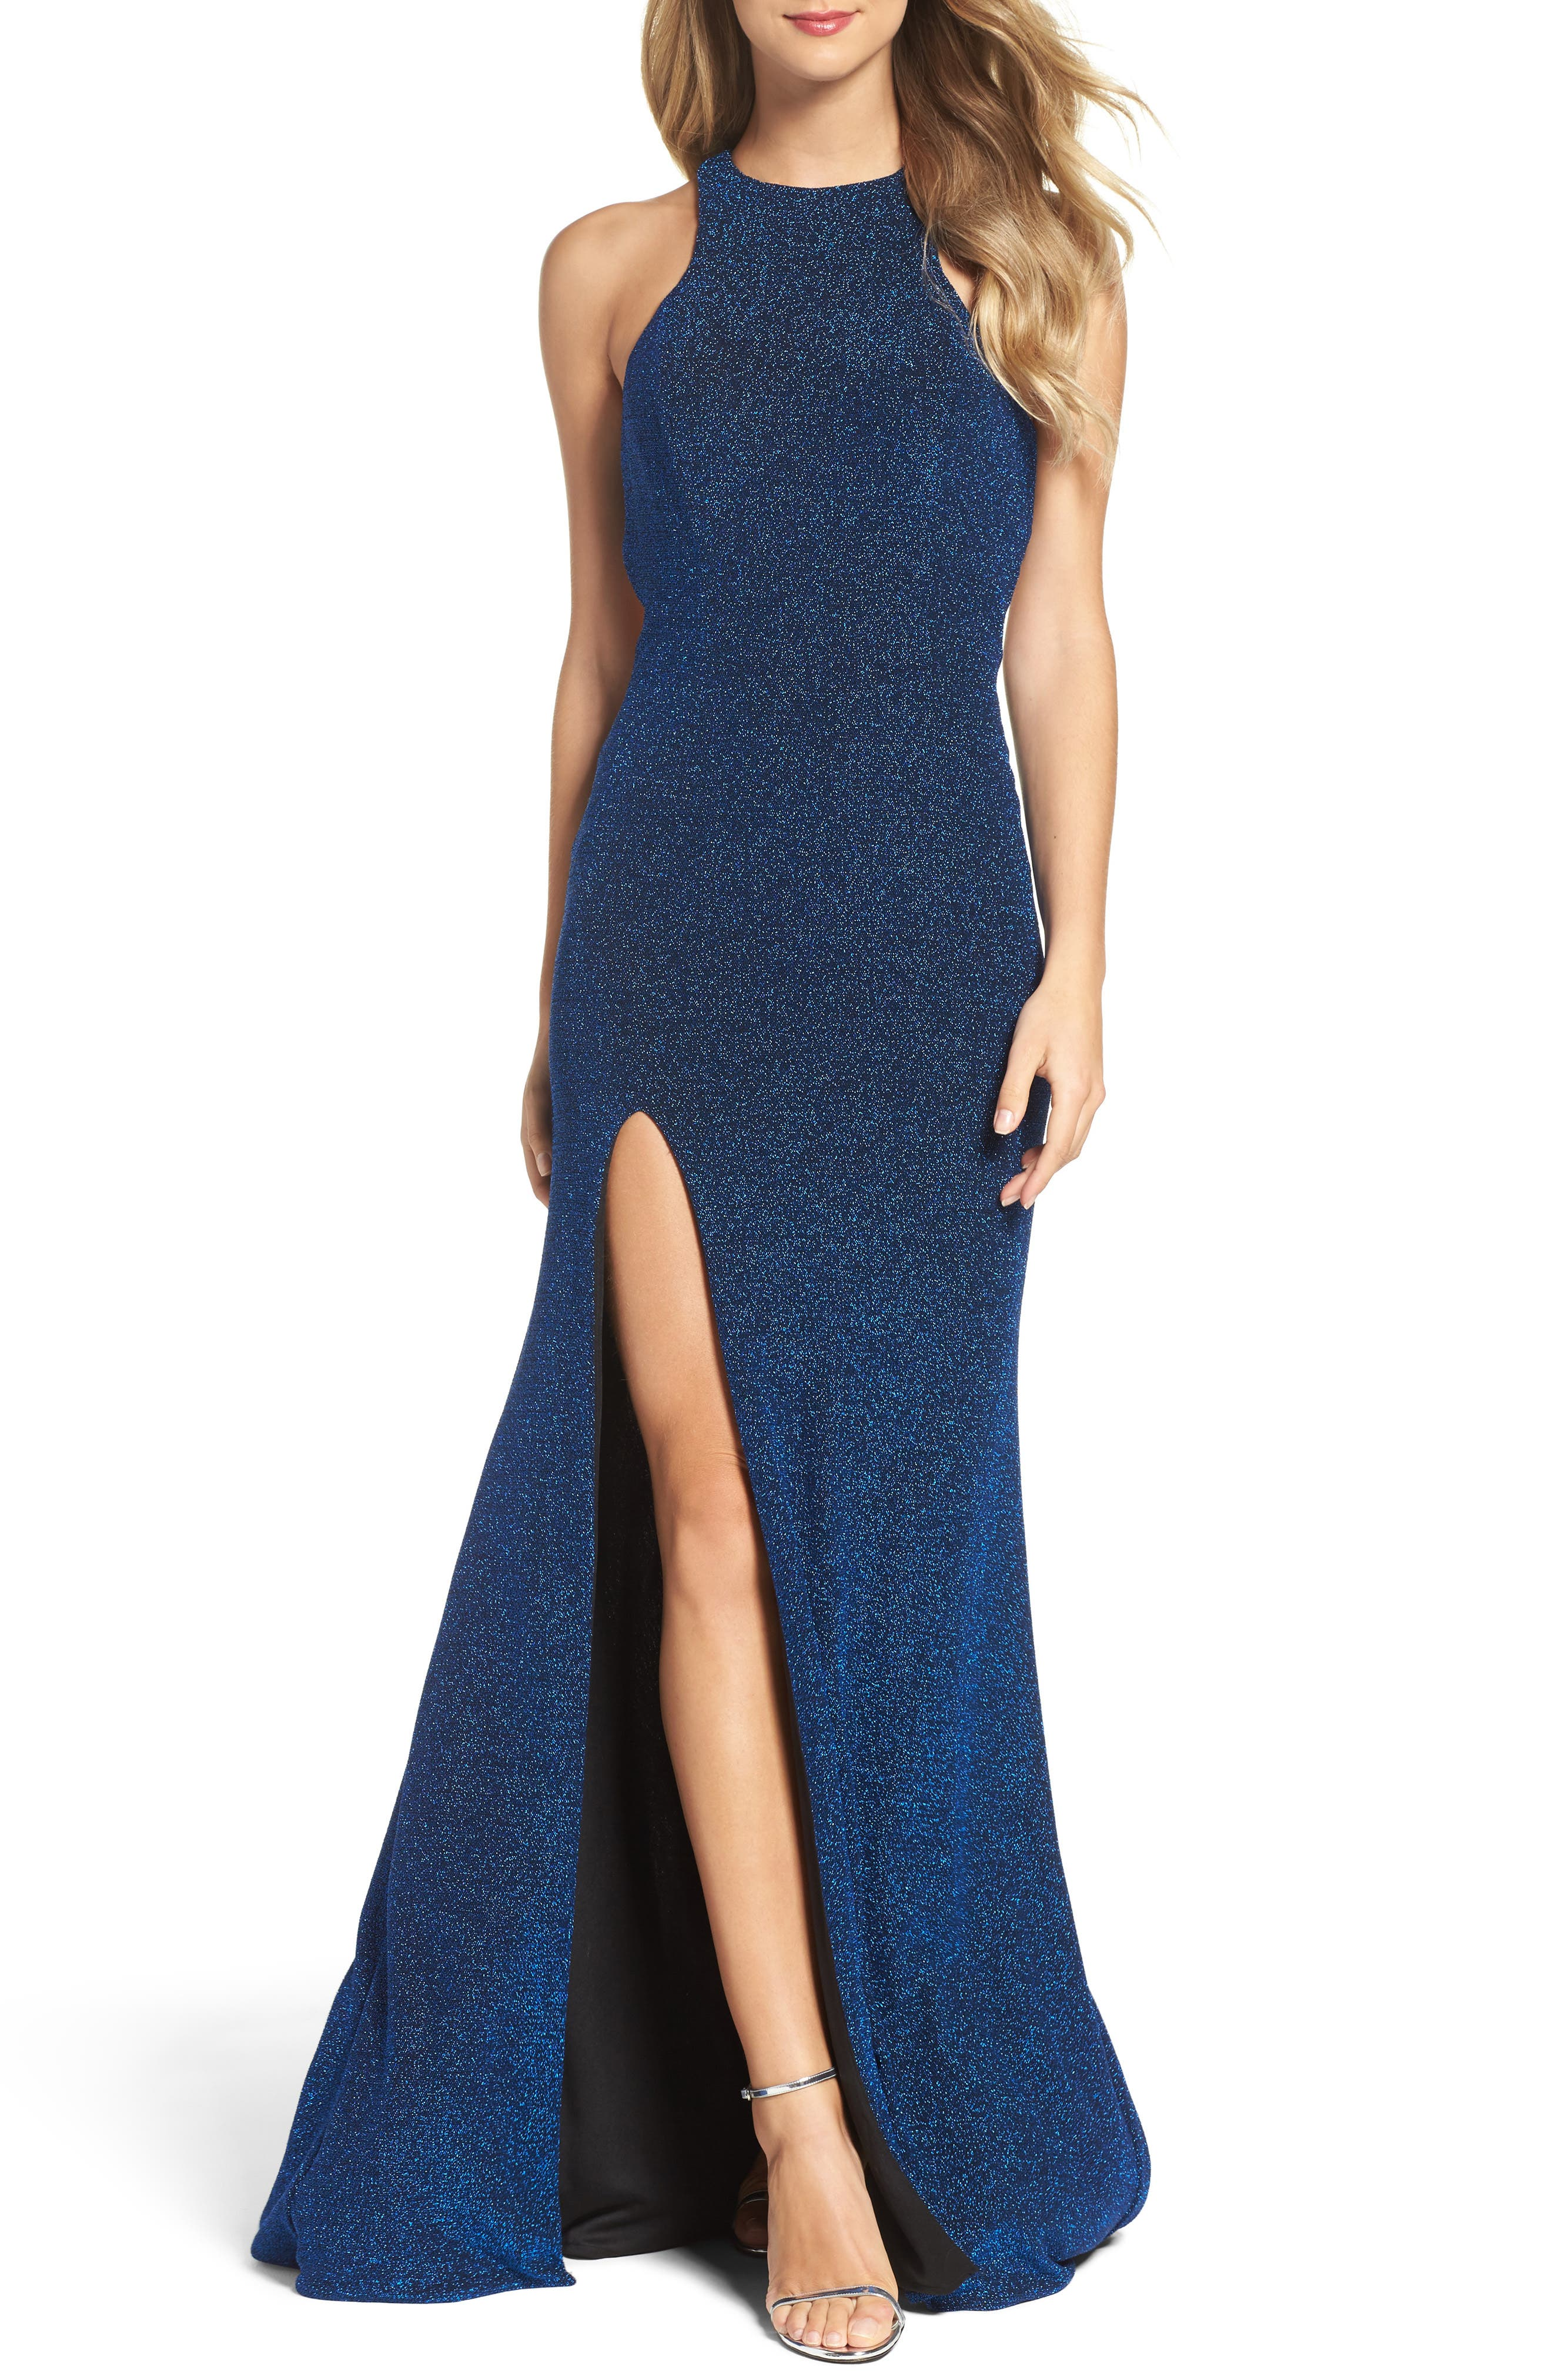 Alternate Image 1 Selected - La Femme Cutout Metallic Jersey Gown